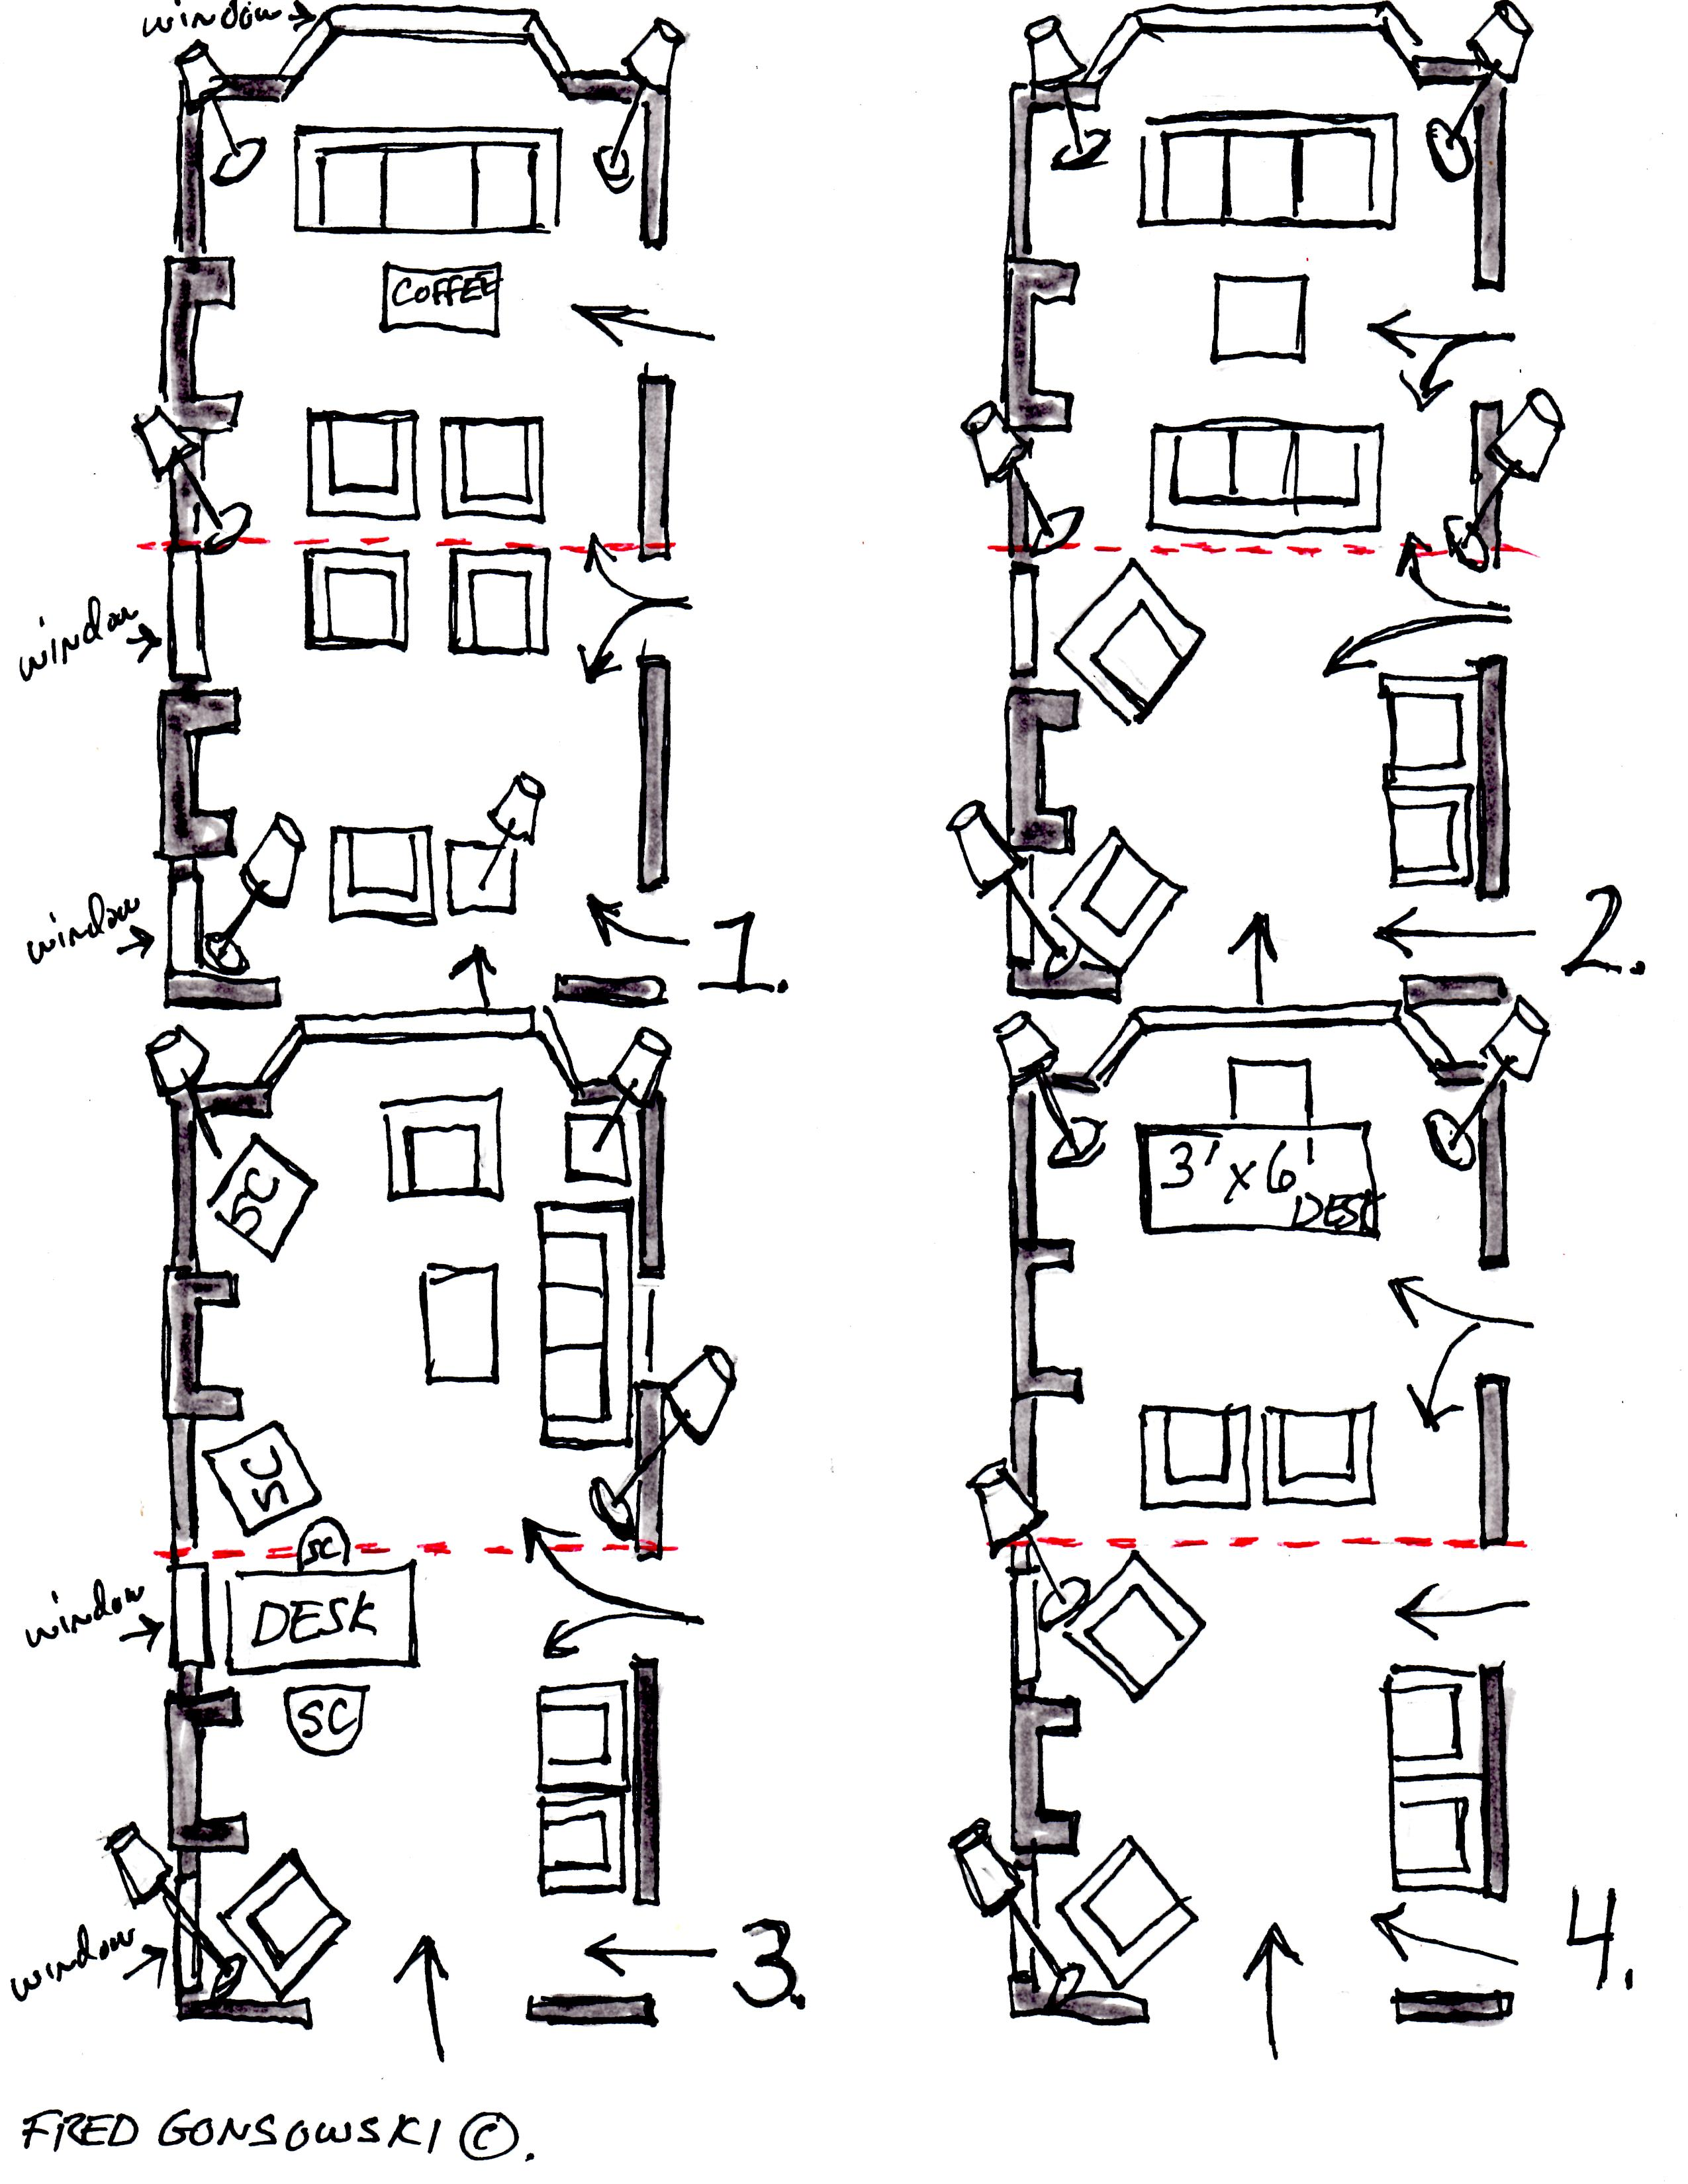 Endearing Narrow Living Room Layout Of Now Let S Look At The